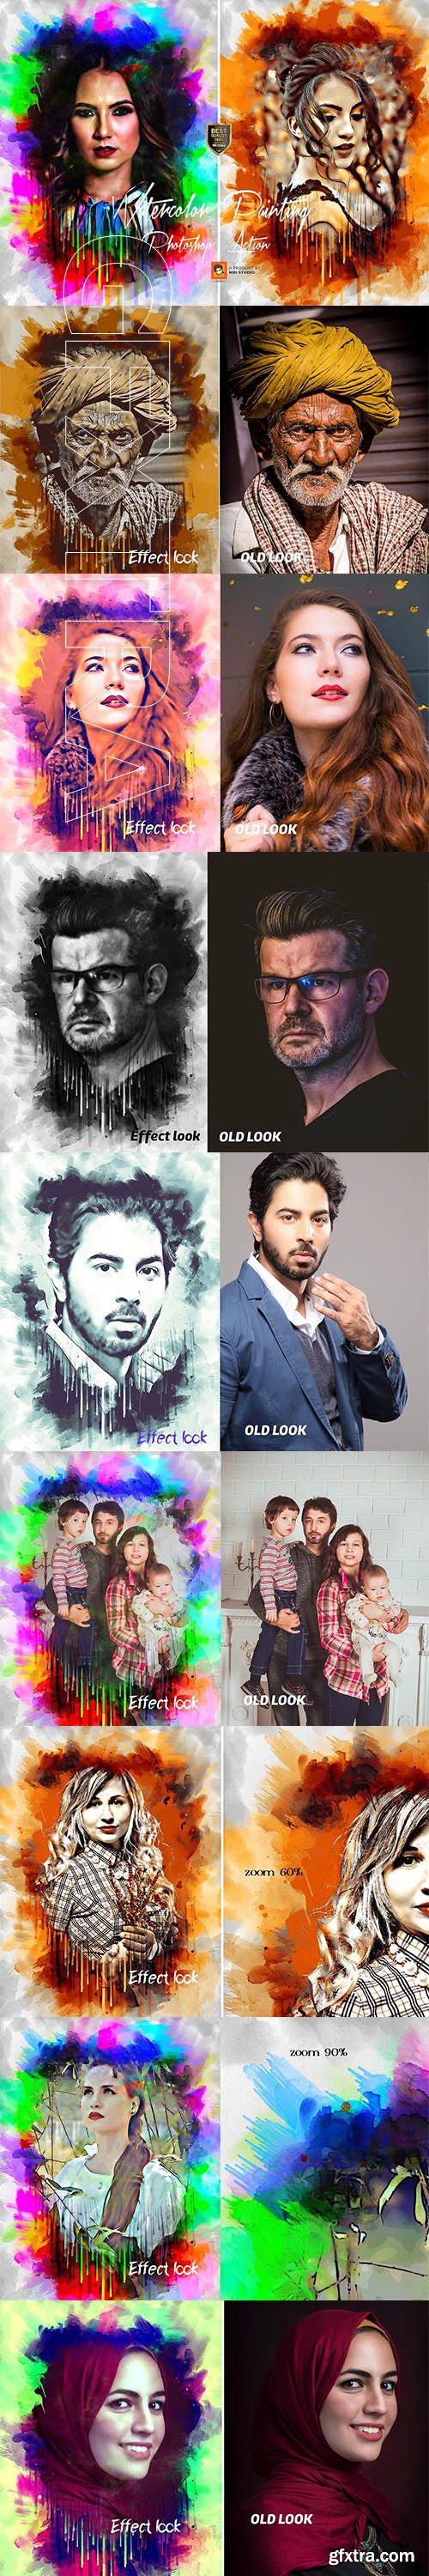 CreativeMarket - Watercolor Painting Photoshop Action 3143144